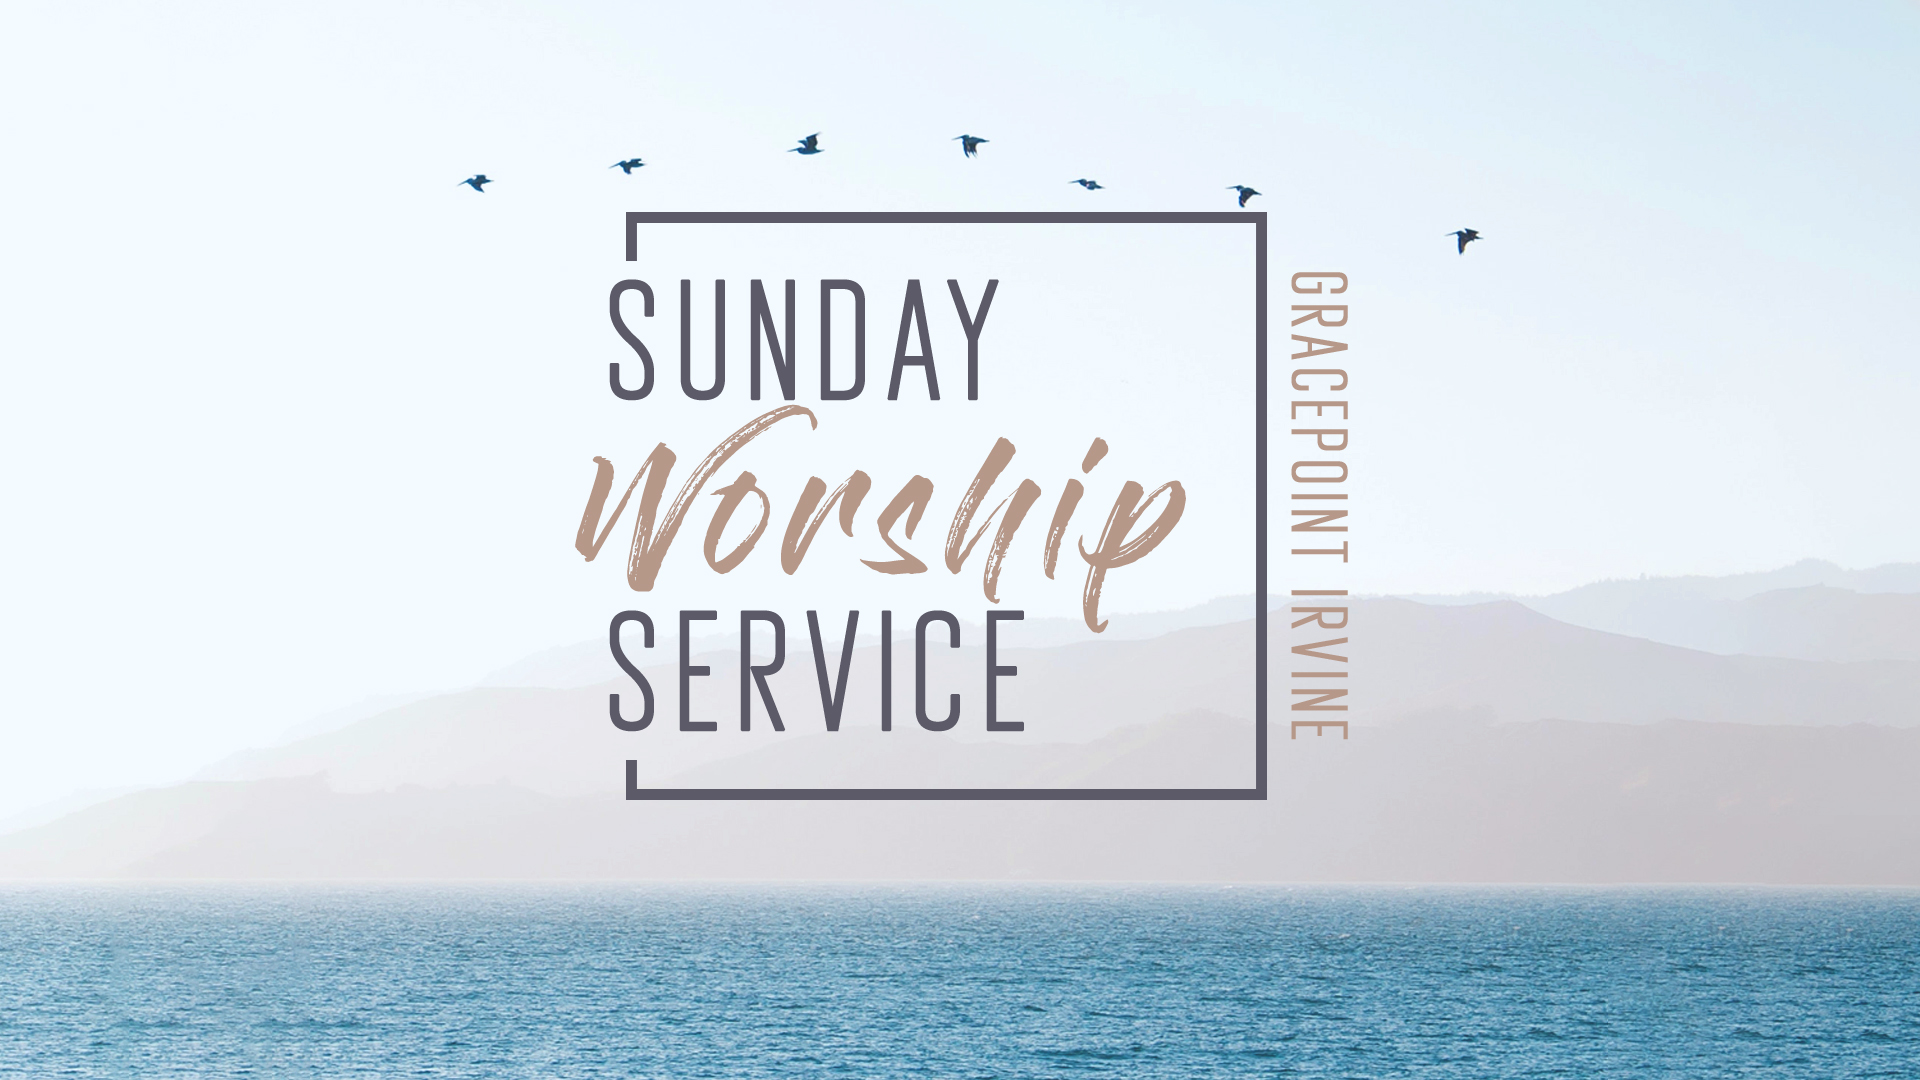 Looking for a church?  Gracepoint  will be having Sunday service on campus at Newkirk Alumni Center B at  1:30pm .  Rides will be from AV and Pippin Lot at 1pm.